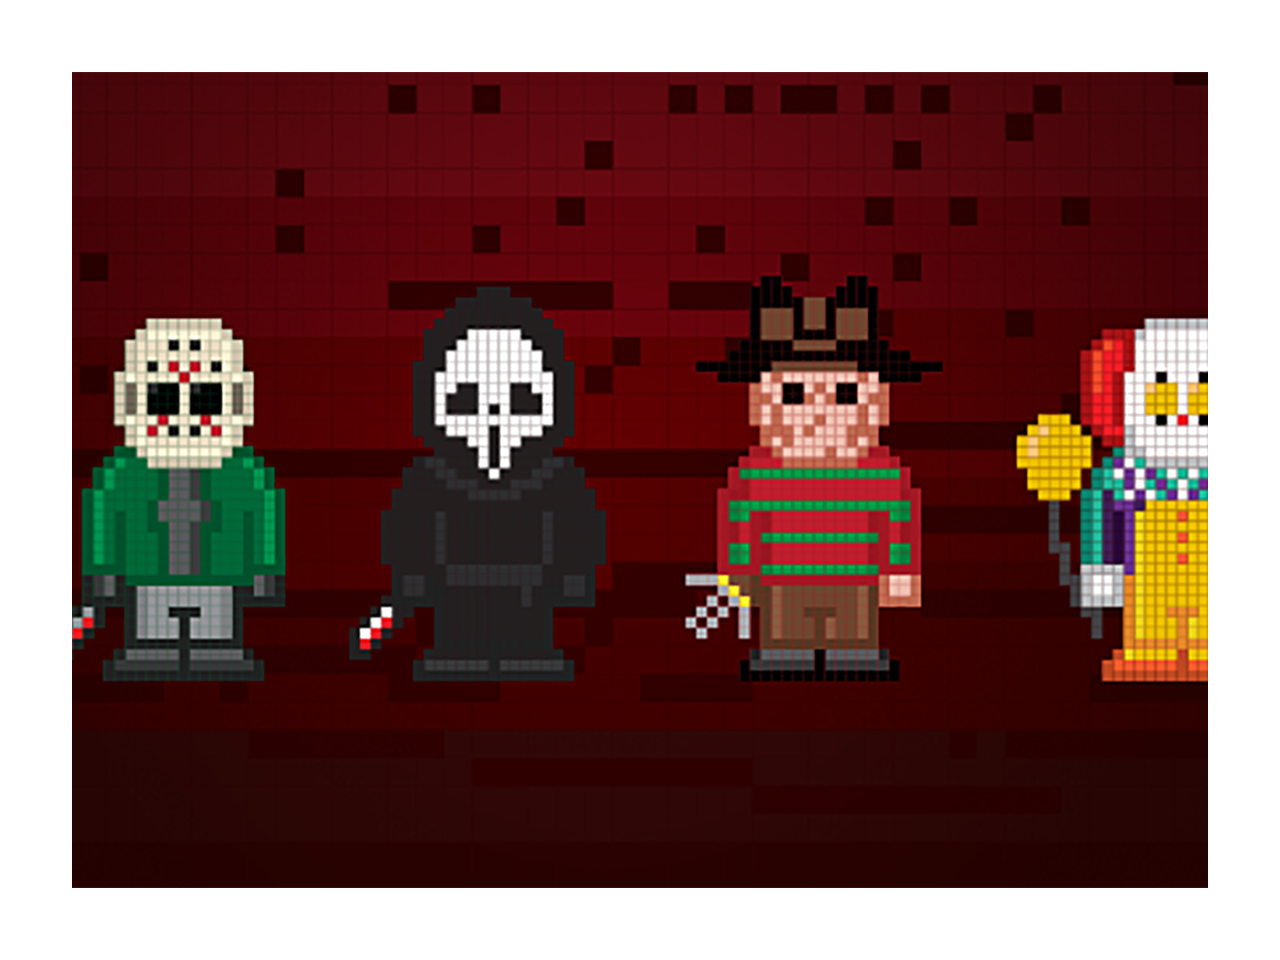 Ghostface drawing scary movie mask. Illustration design pixel art